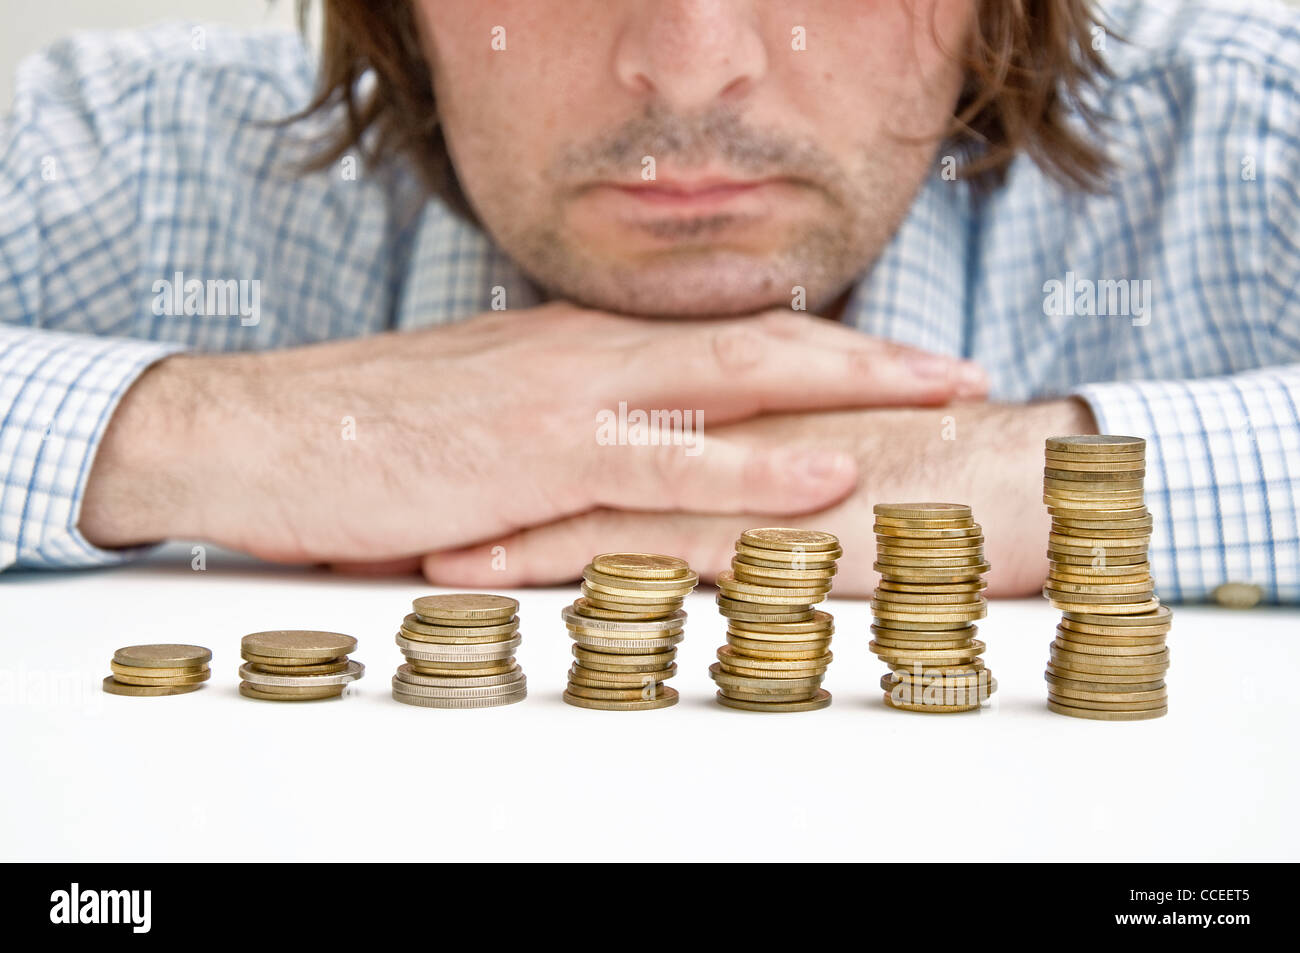 Businessman siting at the table and thinking about possible dollar investments. Stock Photo